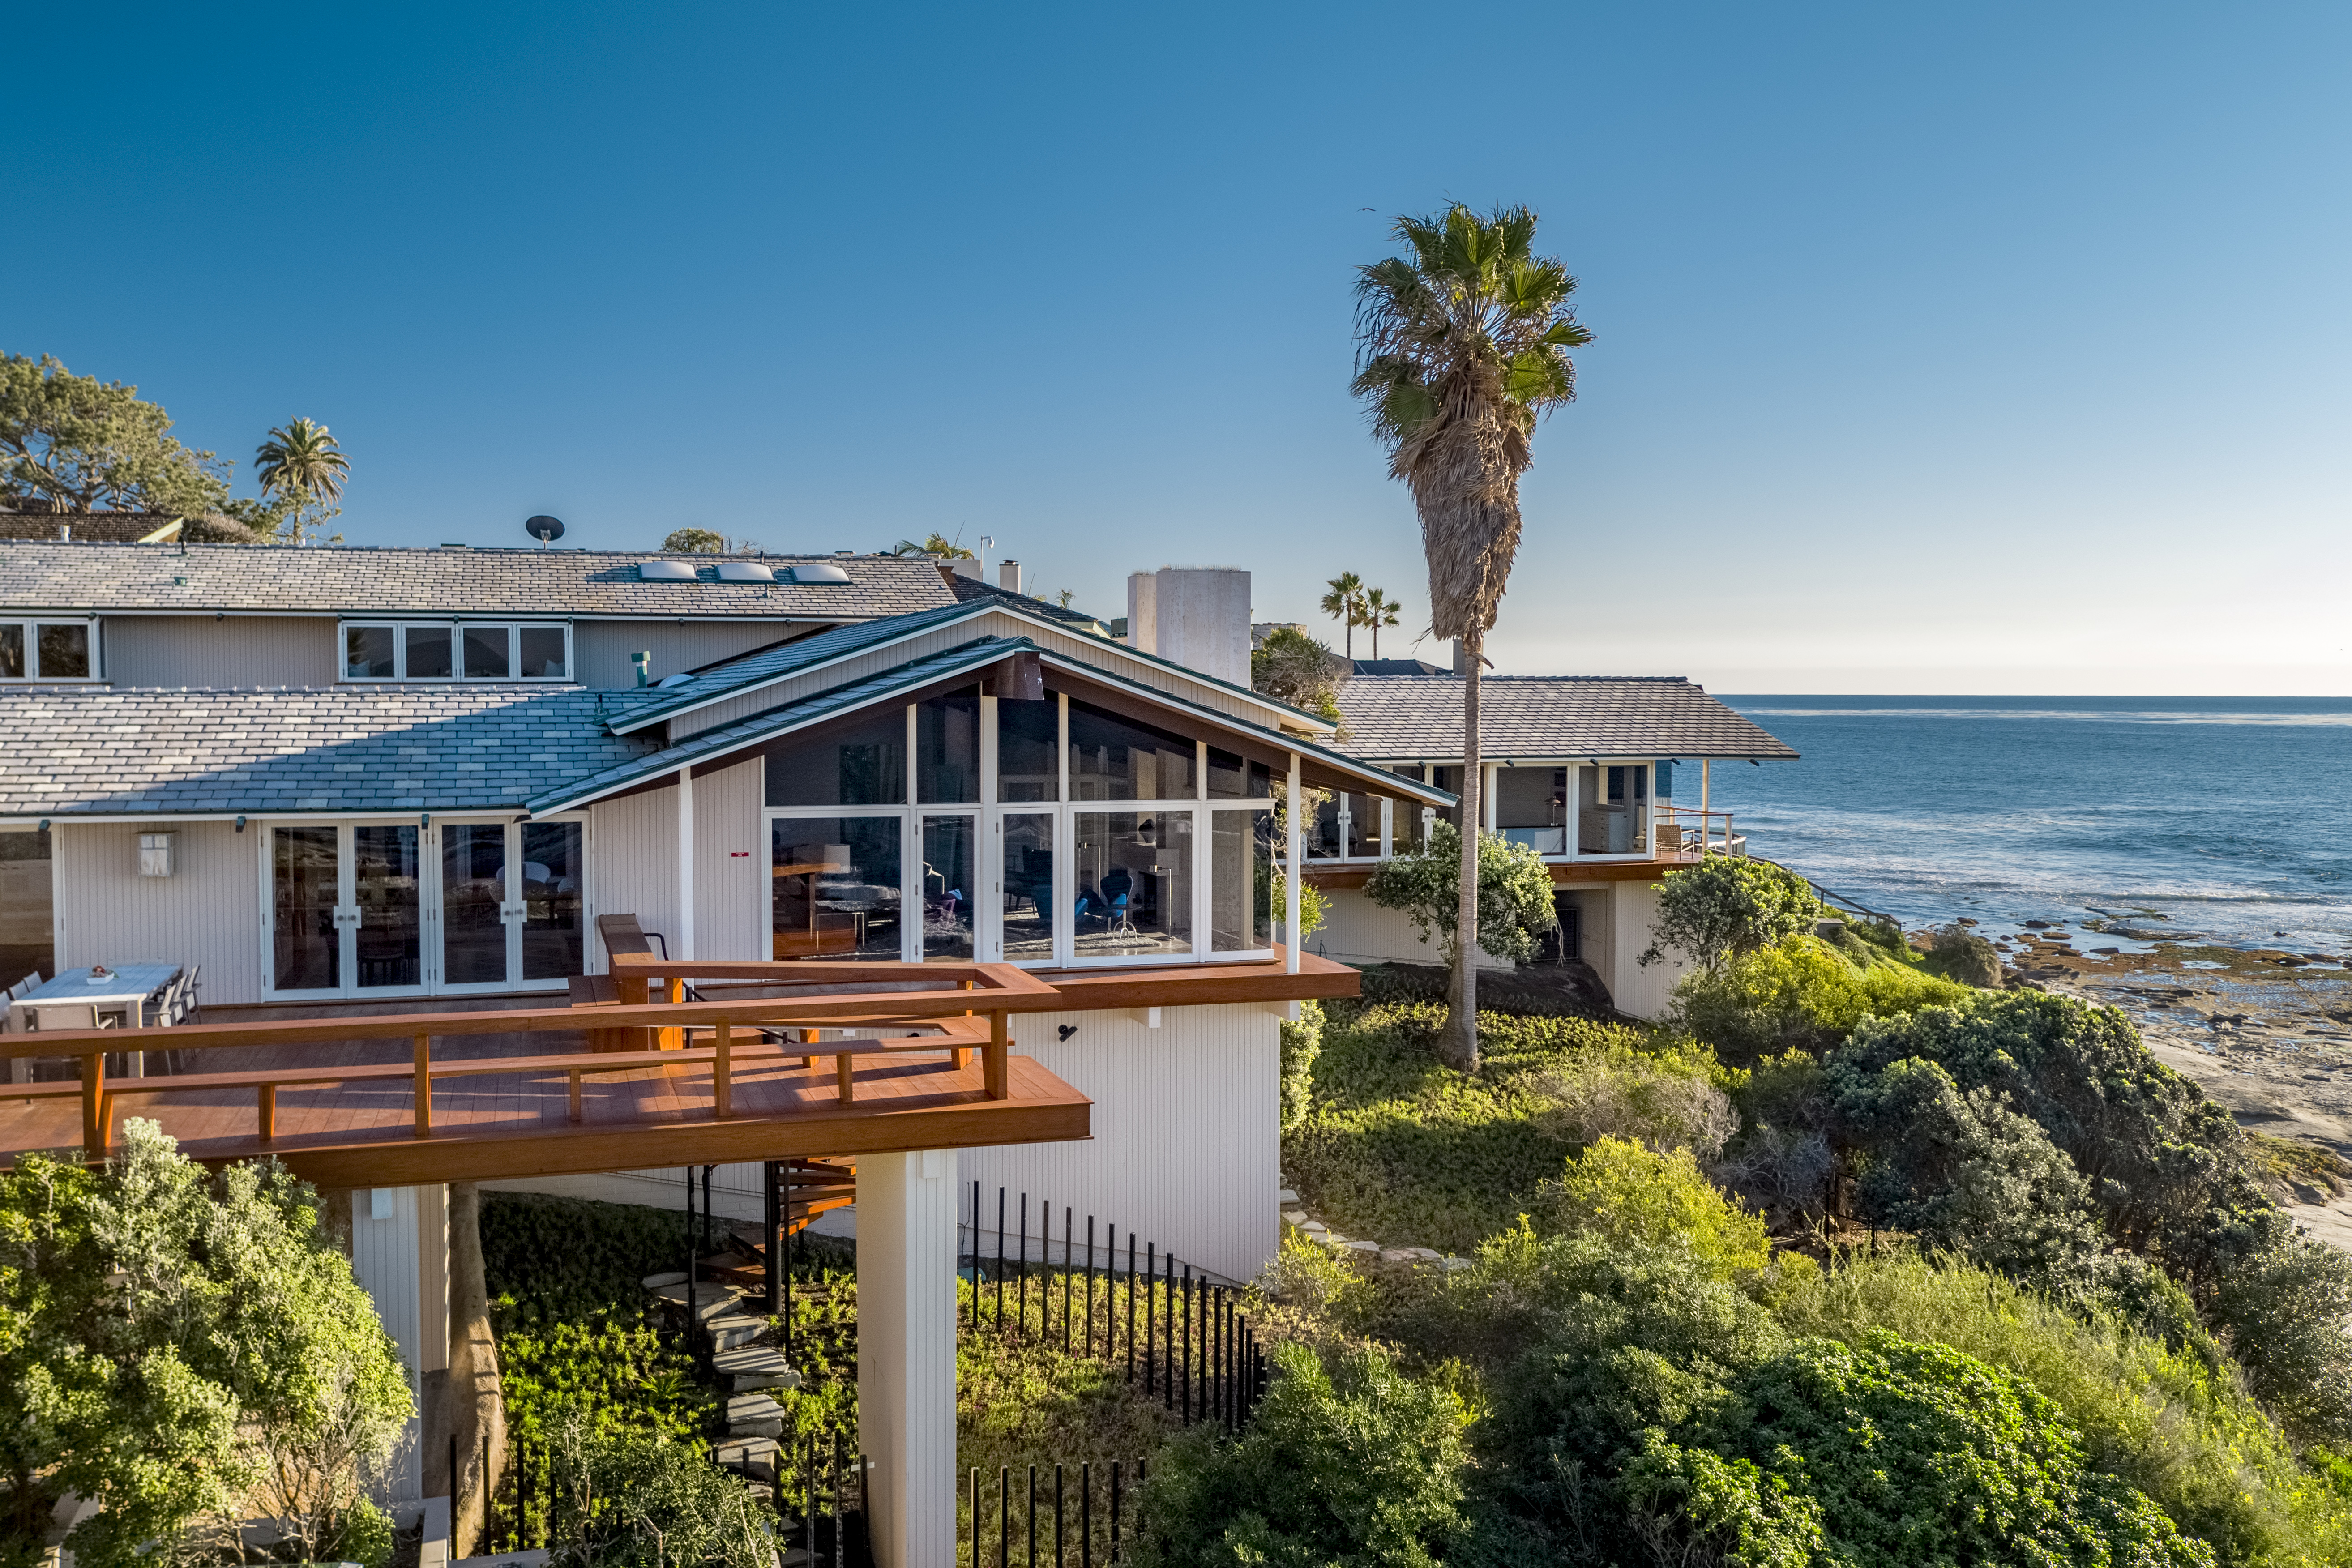 An exterior view of an oceanfront home with lots of windows and decks. A palm tree rises next to the house and you can see the ocean in the distance.